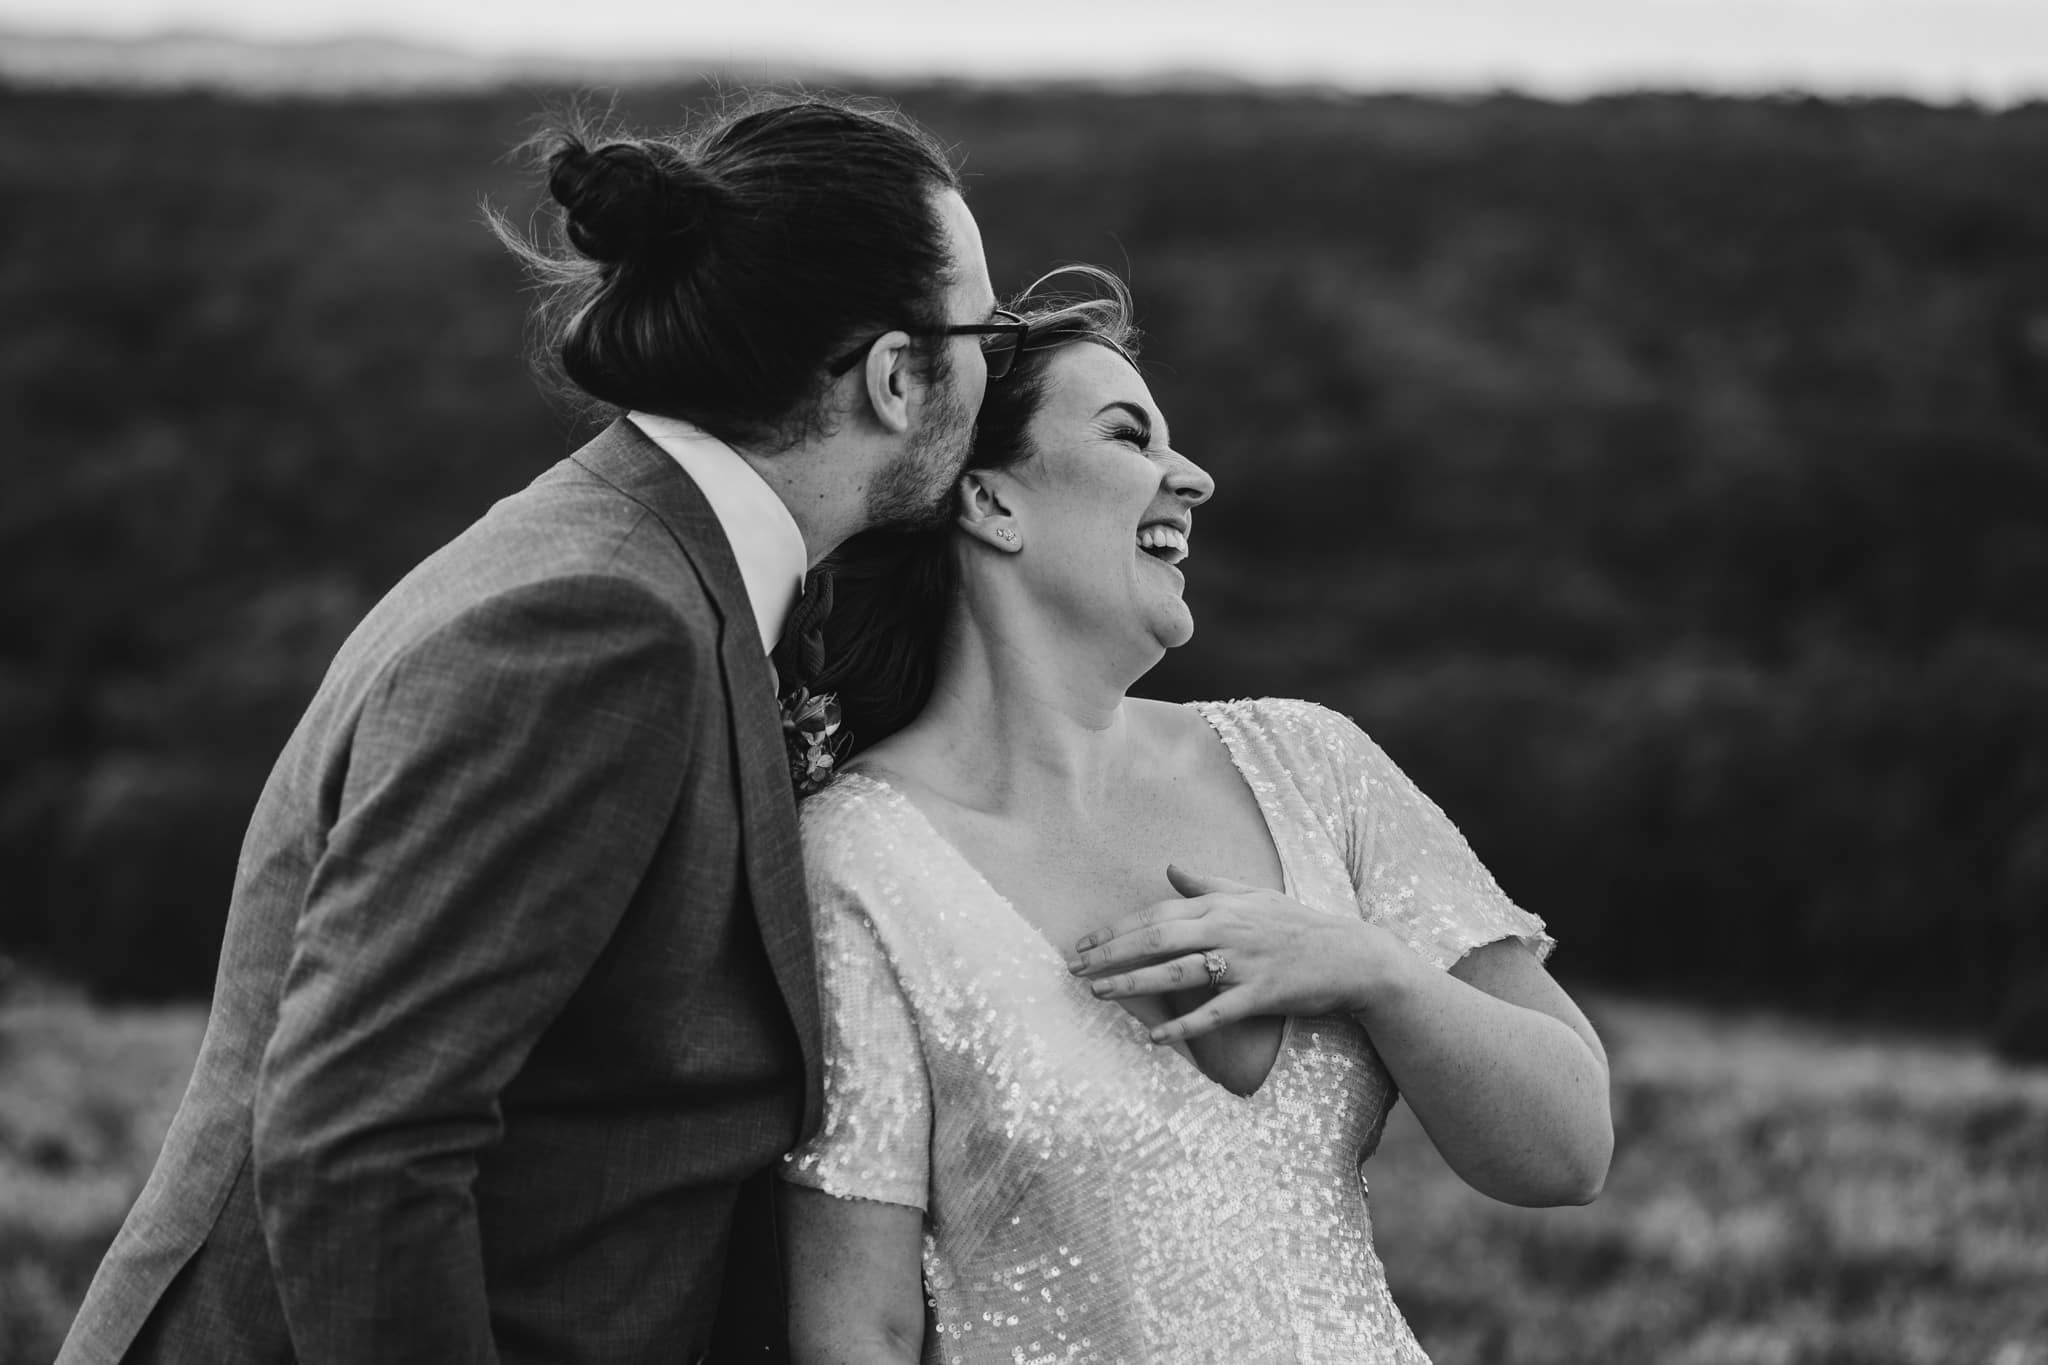 Kate & Brodie laughing during their Camp Sunnystones wedding.